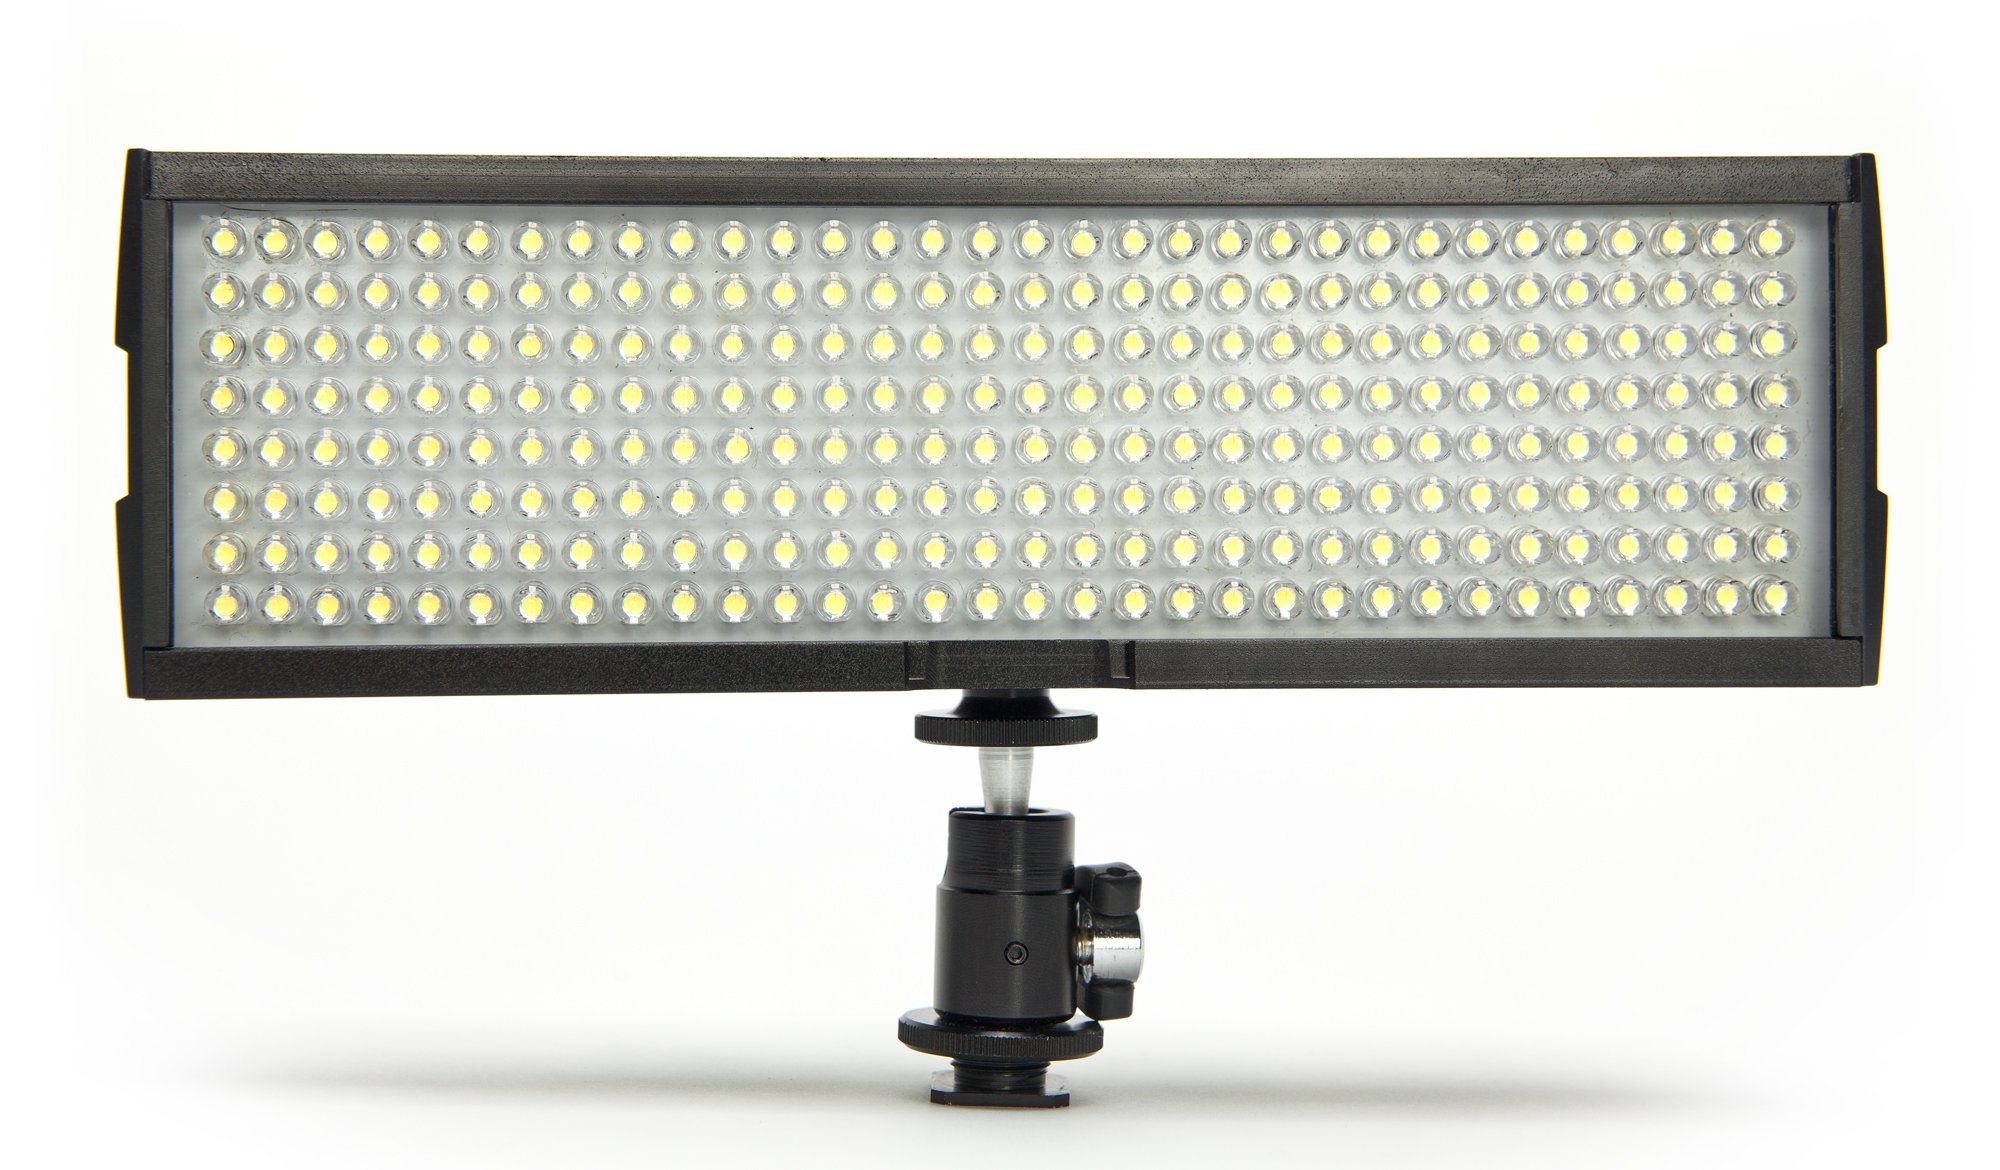 Digital Juice Miniburst 256: Portable, Dimmable 200W LED Video Light for Studio,Wedding, YouTube,Product Photography,Video Shooting w/Warming Filter and Soft Diffuser,3200-4200K,w/Hotshoe Swivel by Digital Juice